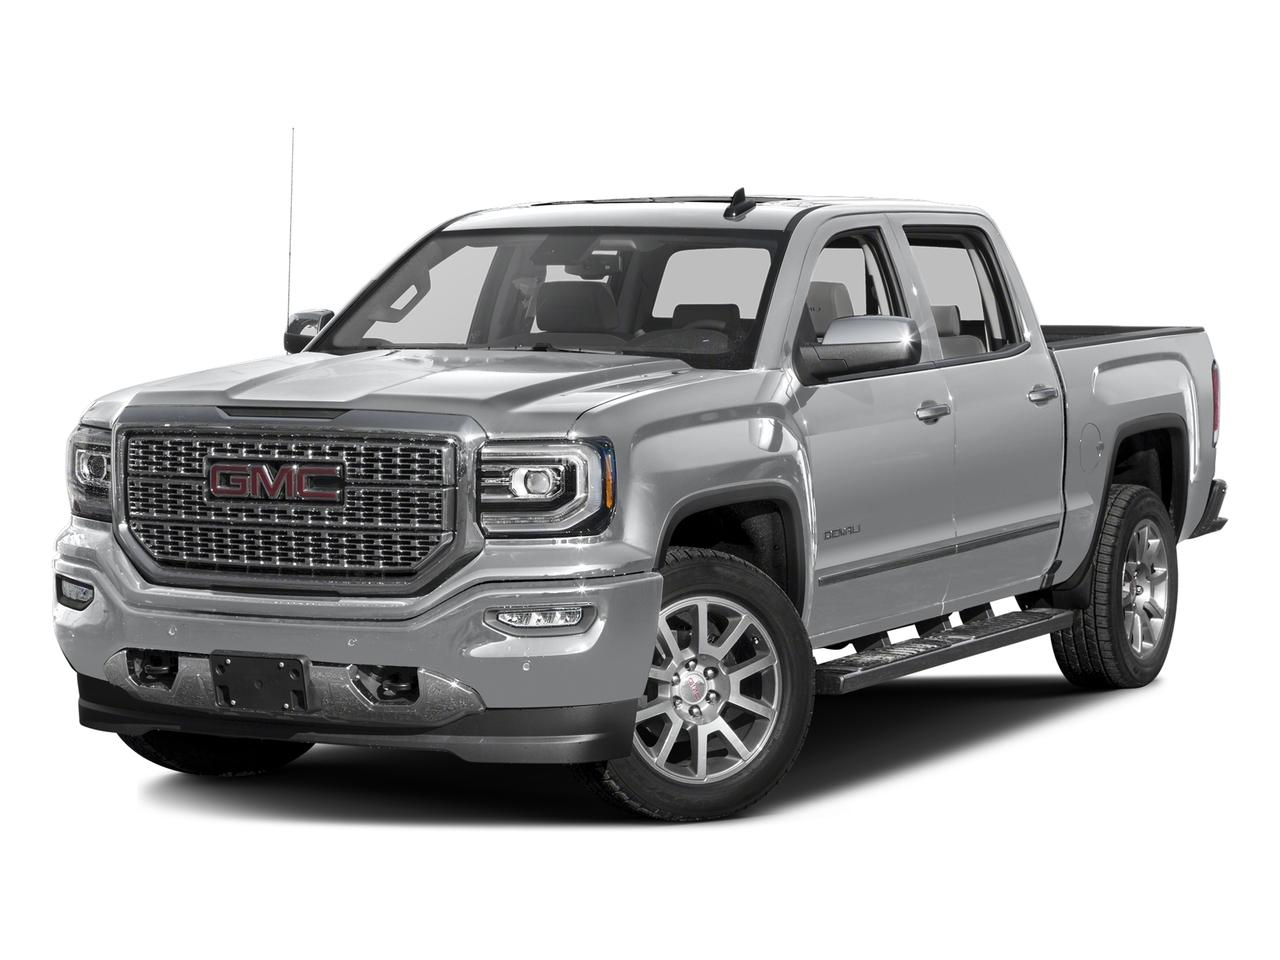 2017 GMC Sierra 1500 Vehicle Photo in Lewisville,, TX 75067